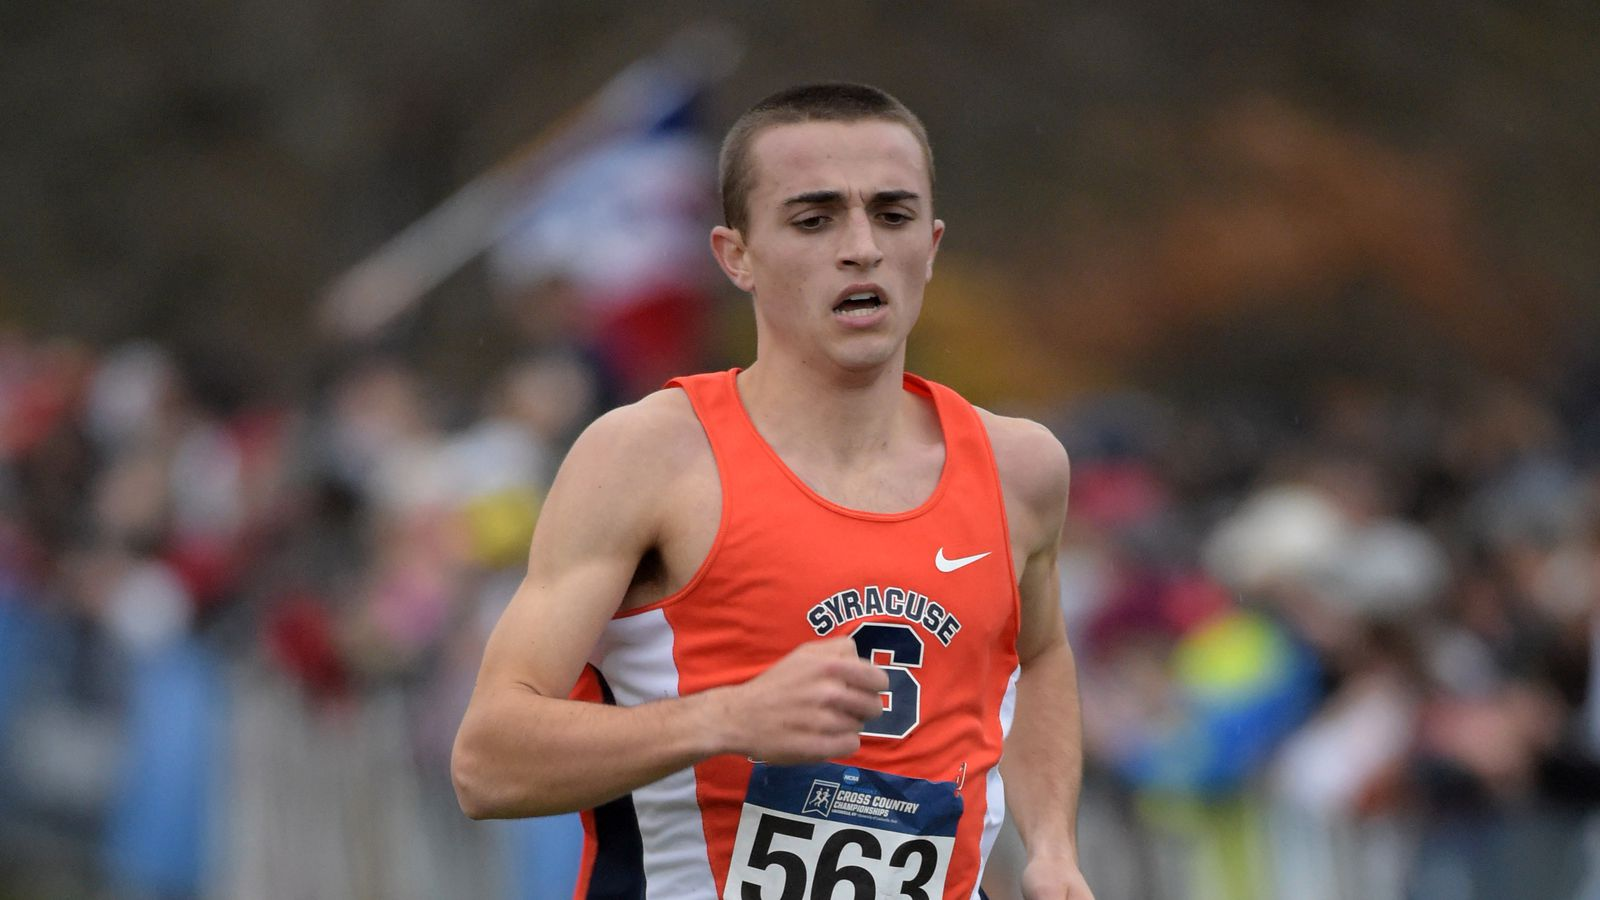 Syracuse Track Amp Field 2016 Indoor Season Preview Troy